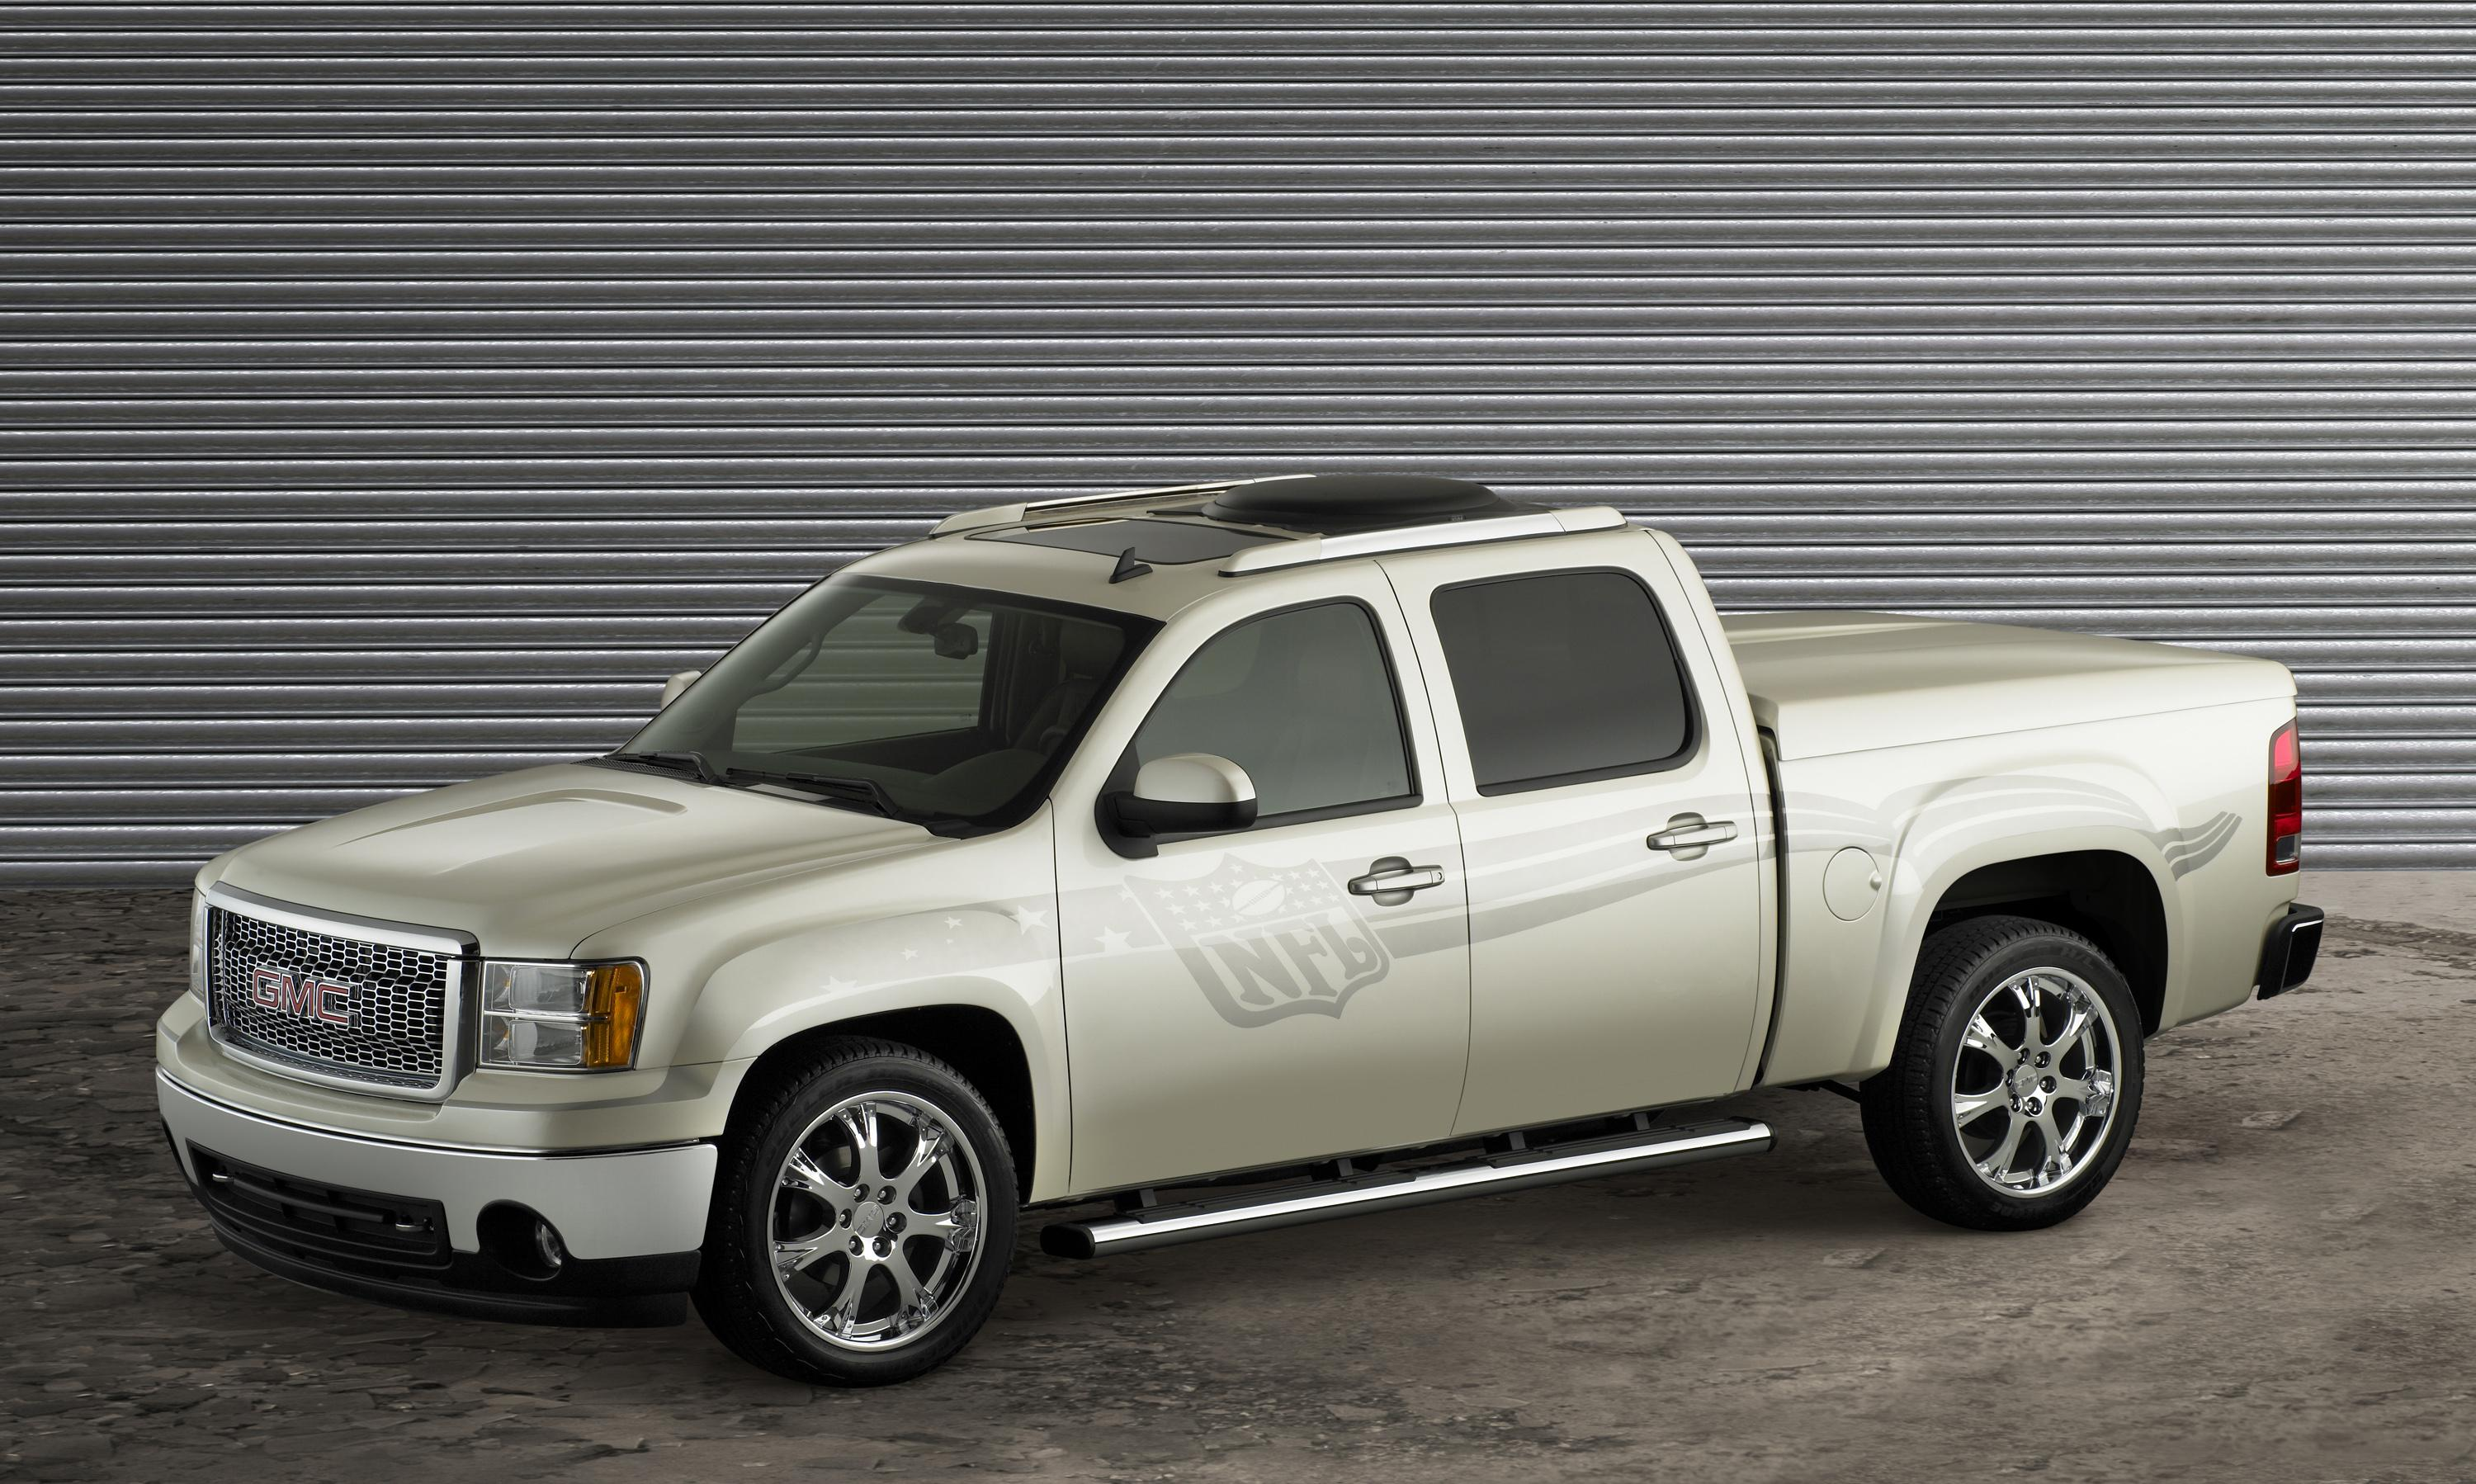 2007 gmc sierra nfl crew cab review top speed. Black Bedroom Furniture Sets. Home Design Ideas